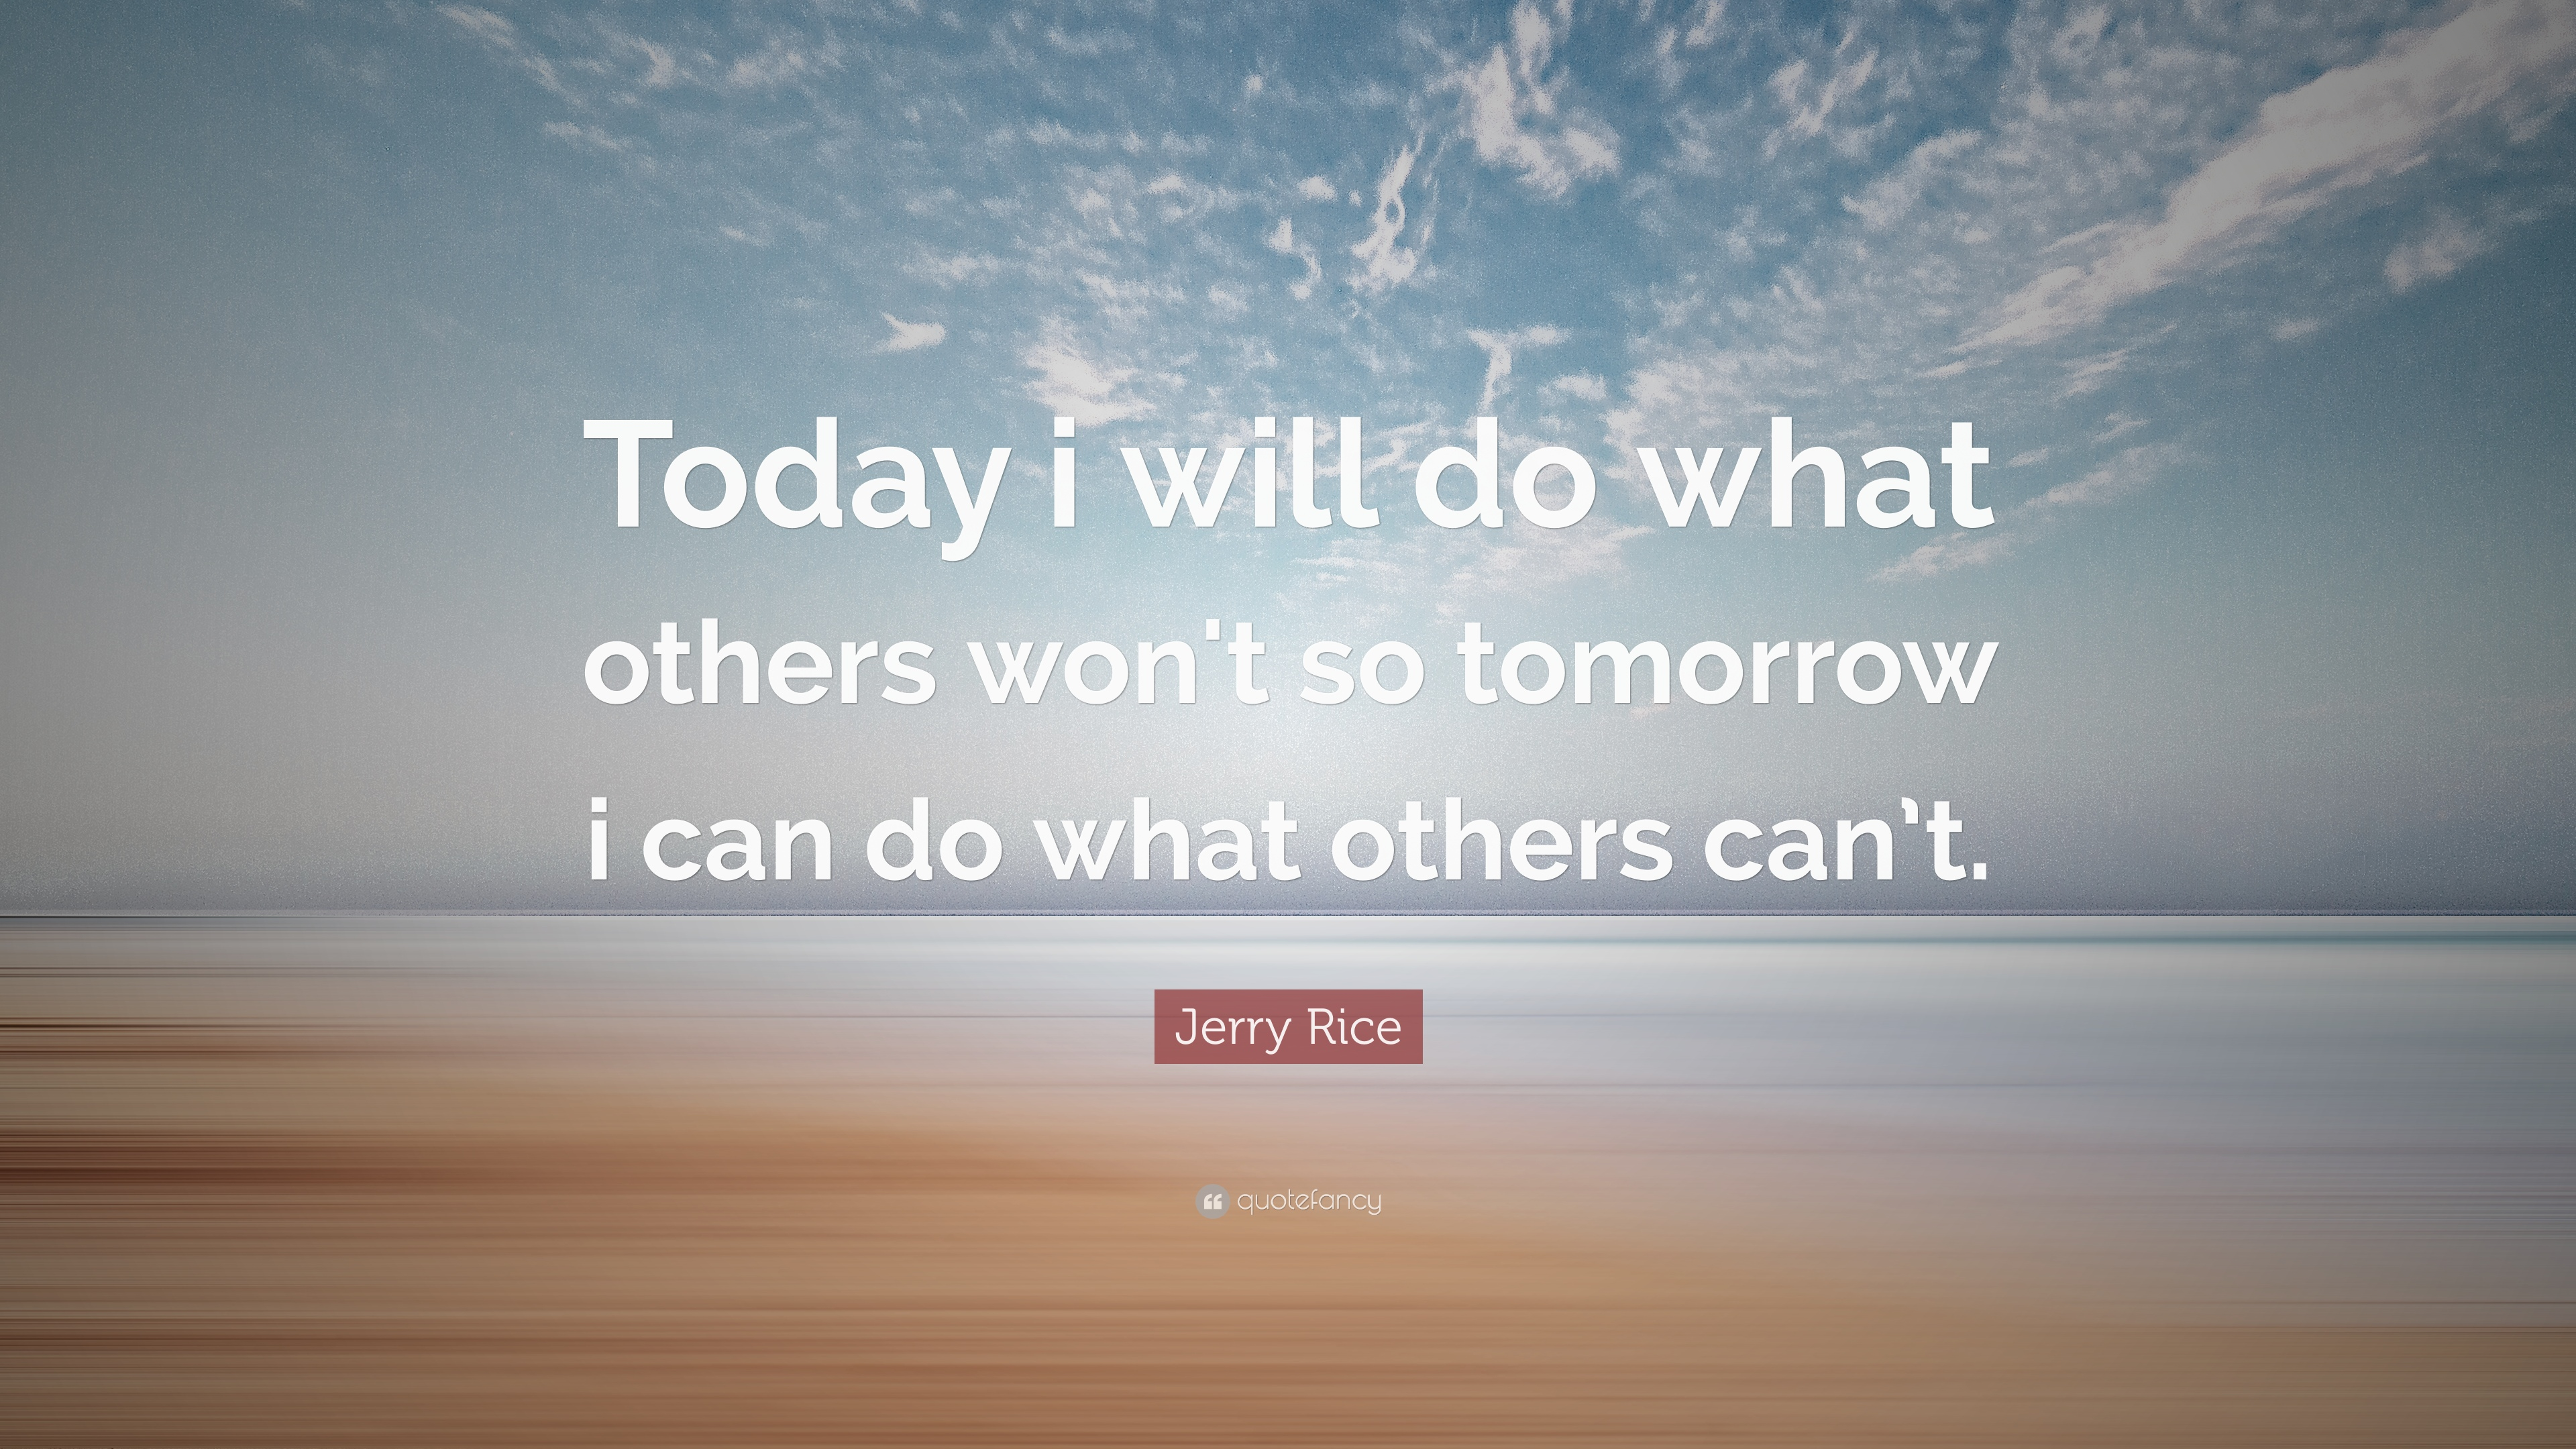 """Today I will do what others won't, so tomorrow I can do what others can't."" – Jerry Rice"